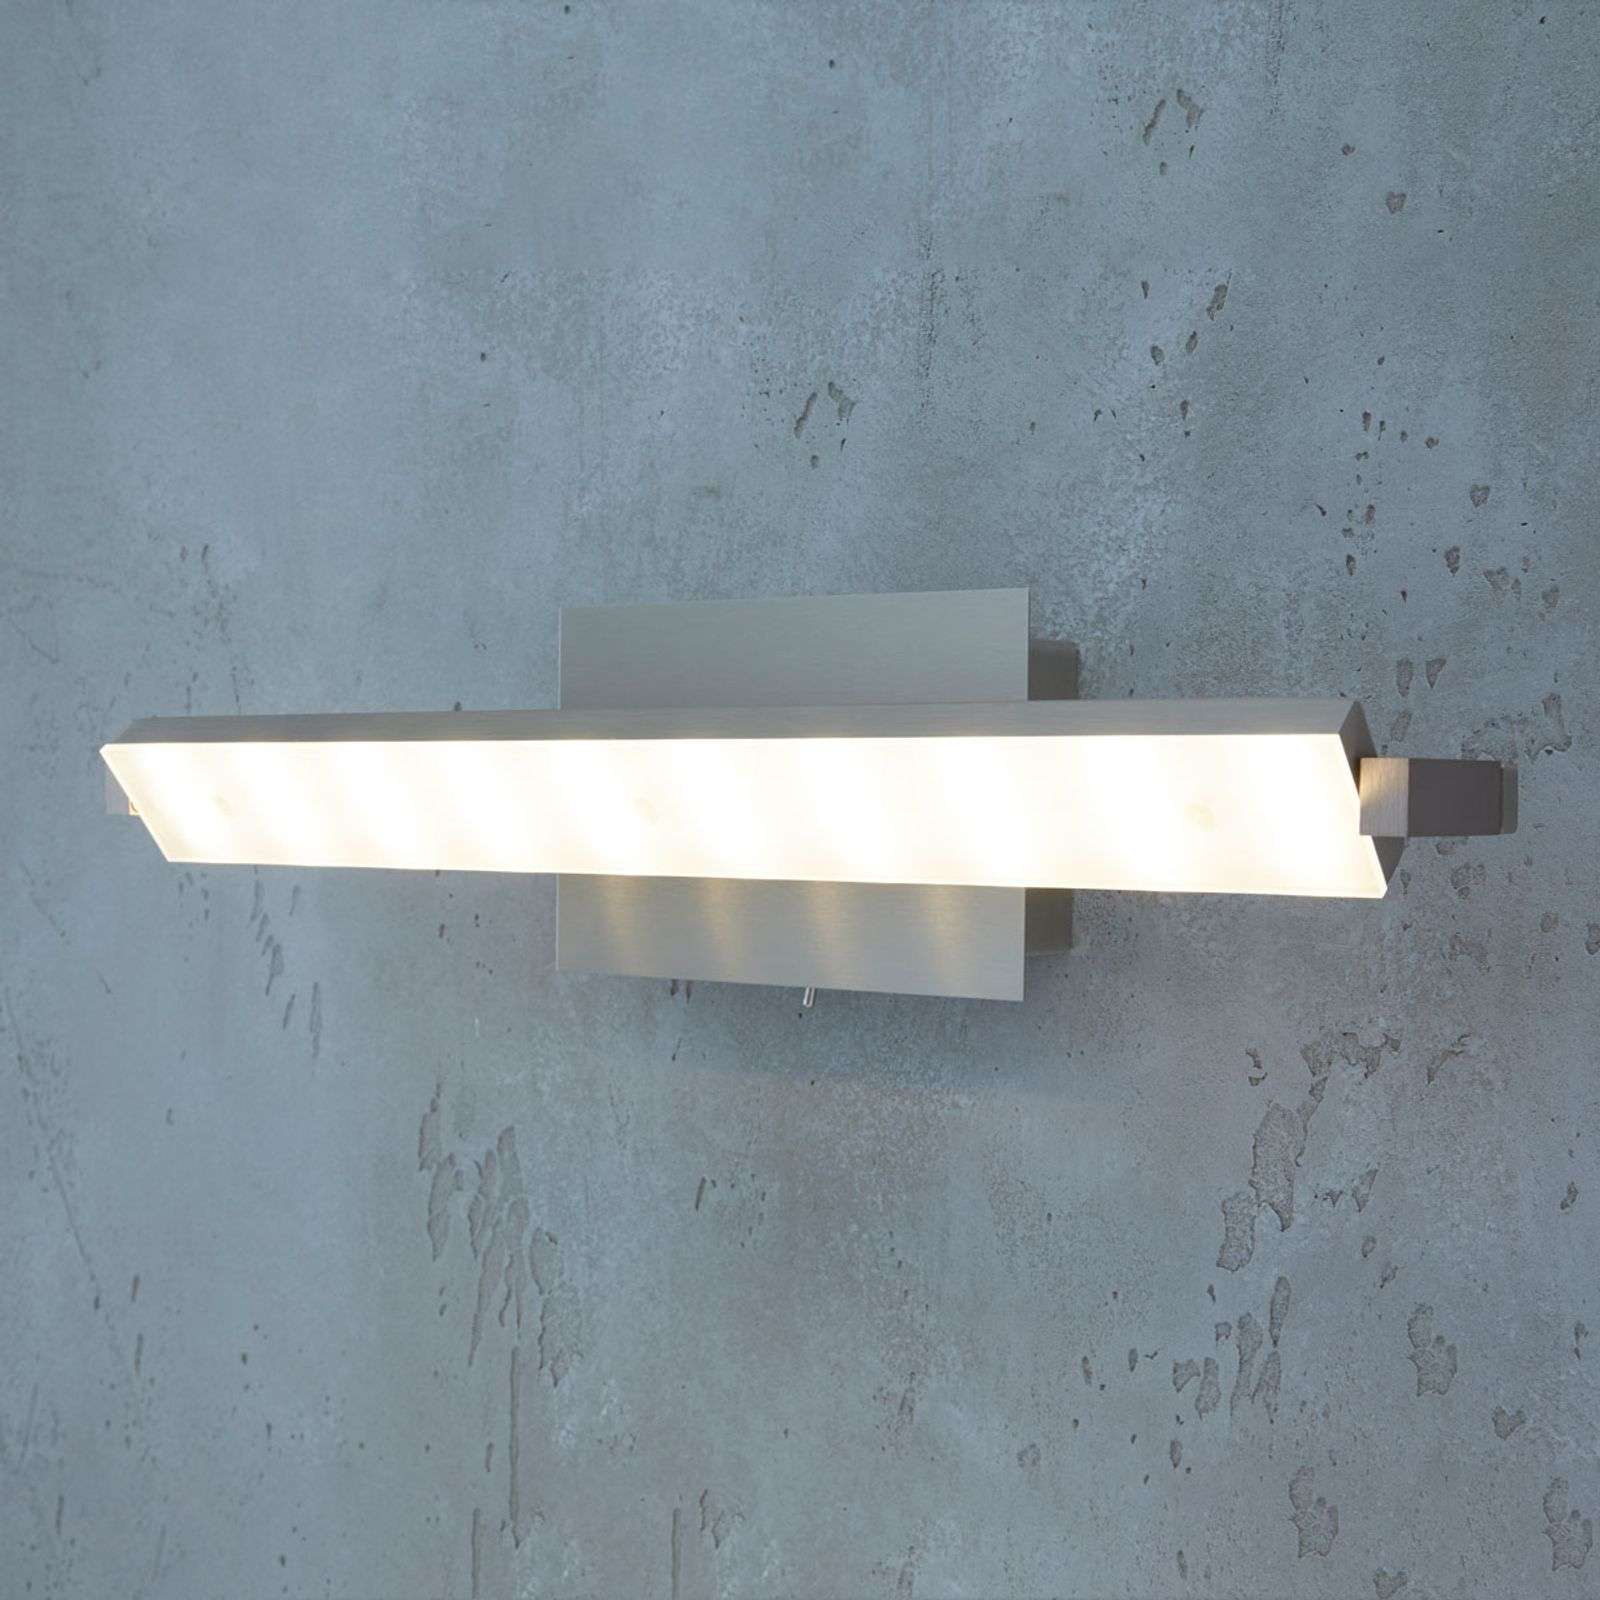 Applique LED Pare girevole con interruttore 40 cm